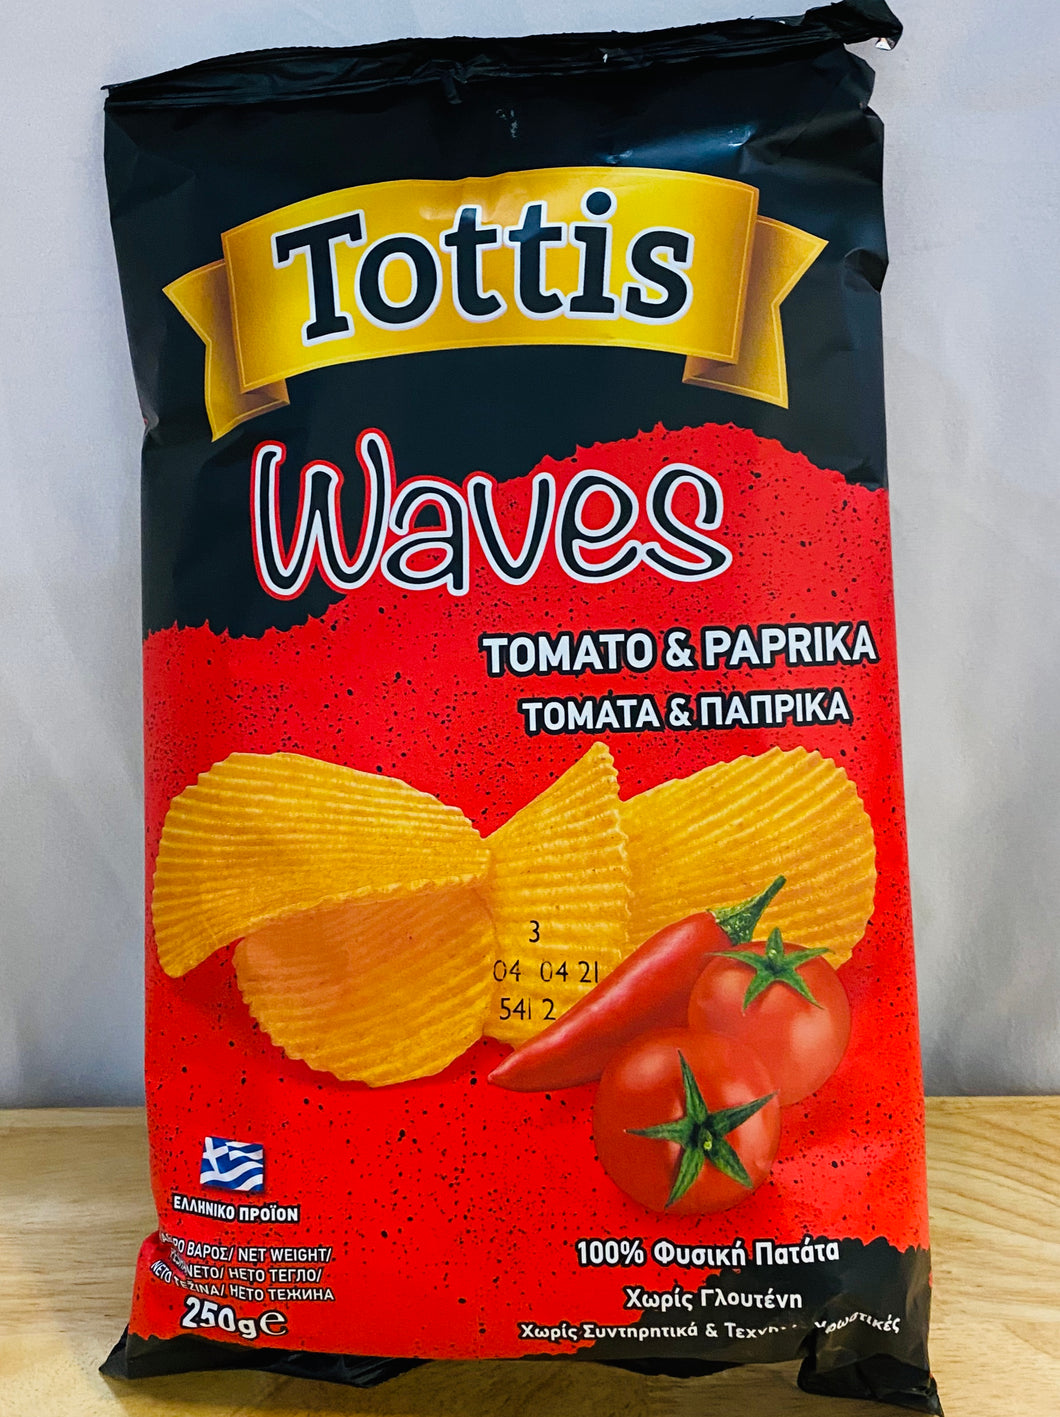 Potato Chips - Tomato & Paprika Flavored